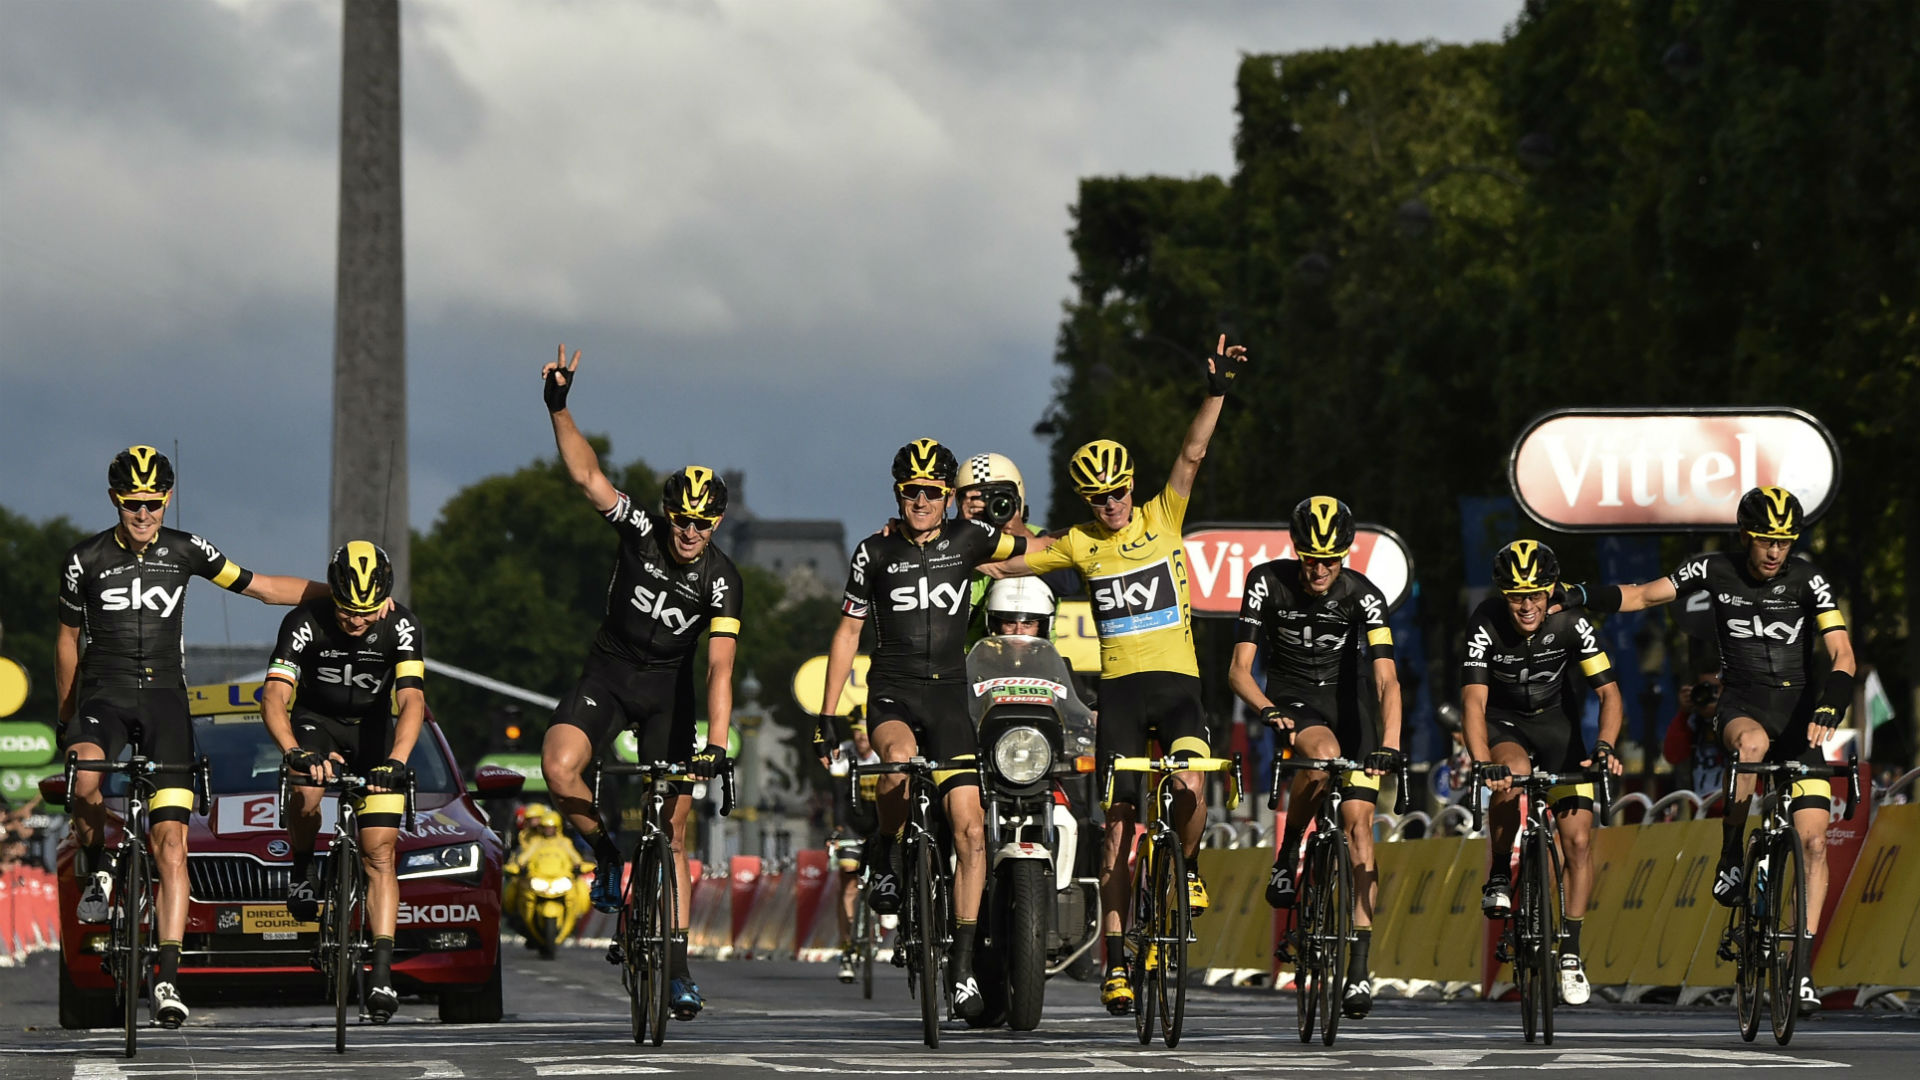 Tour de France 2015: Chris Froome wins race, André Greipel ...